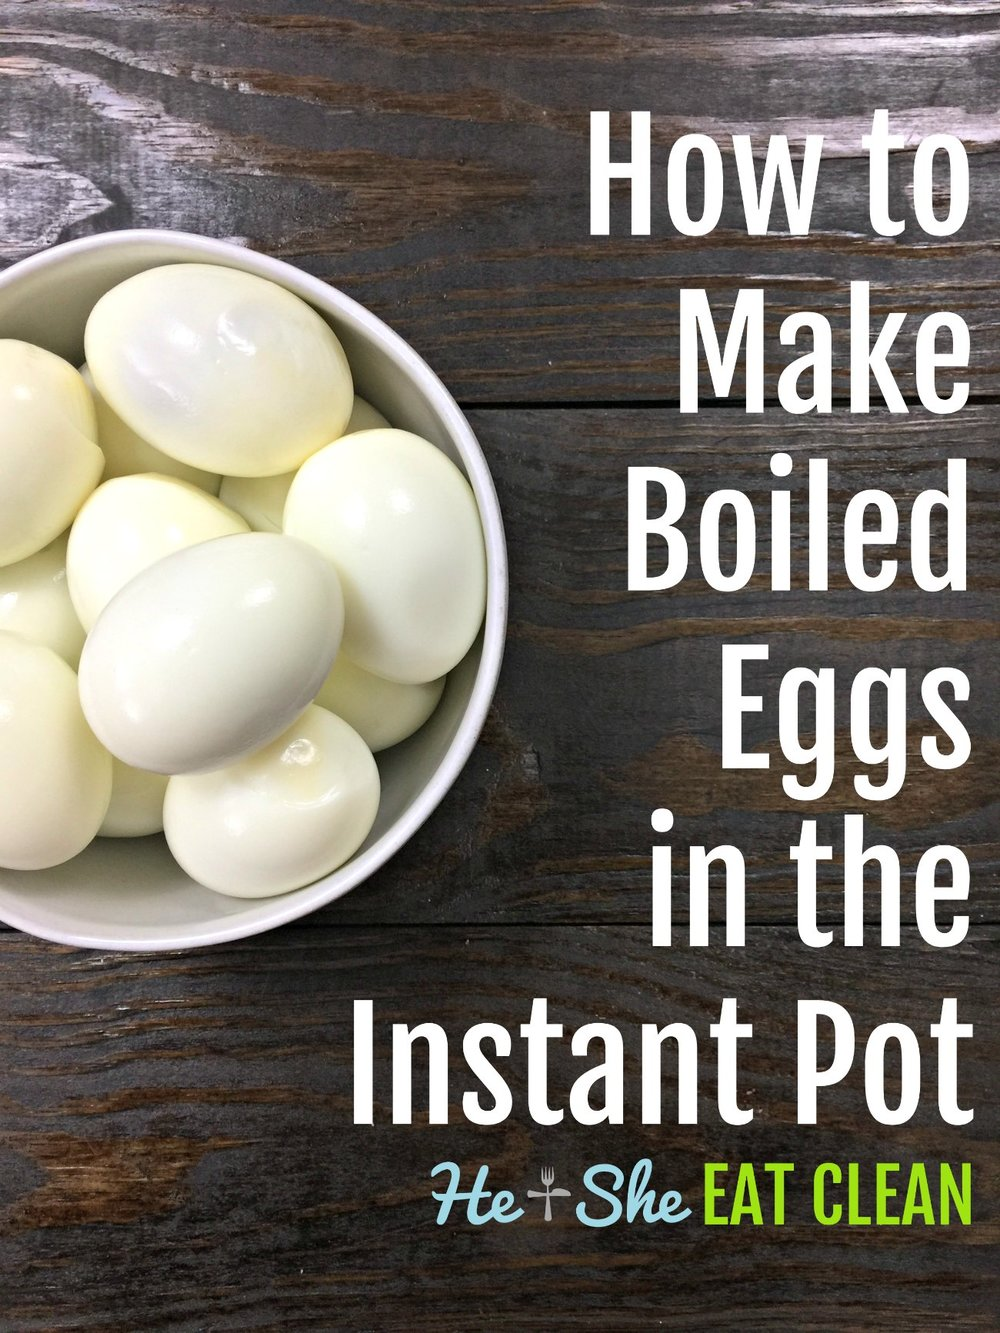 How to Make Boiled Eggs in the Instant Pot